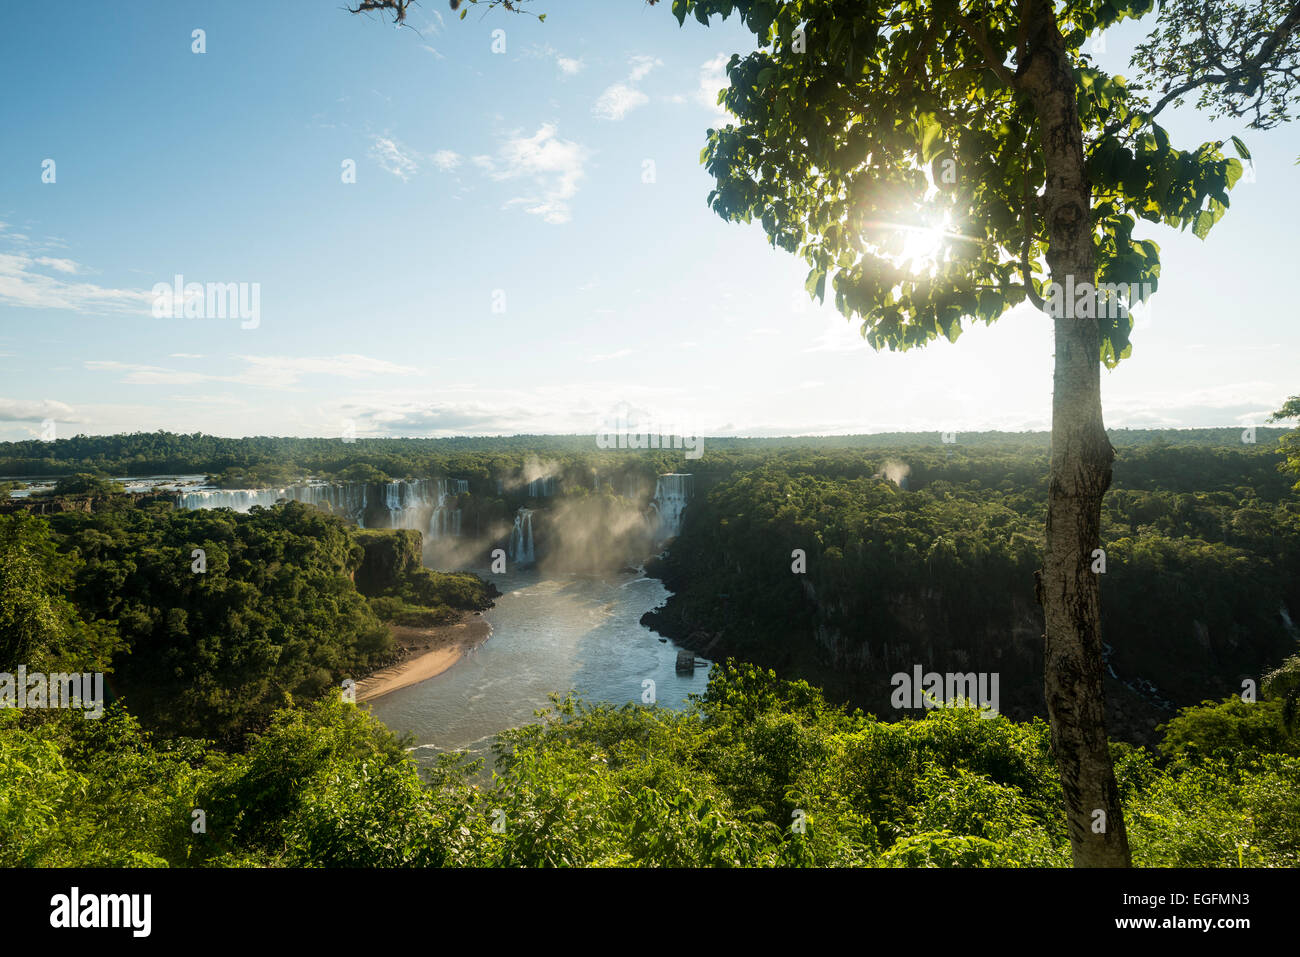 View from 'Trilha das Cataratas', Foz do Iguaçu, Parque Nacional do Iguaçu, Brazil, South america - Stock Image